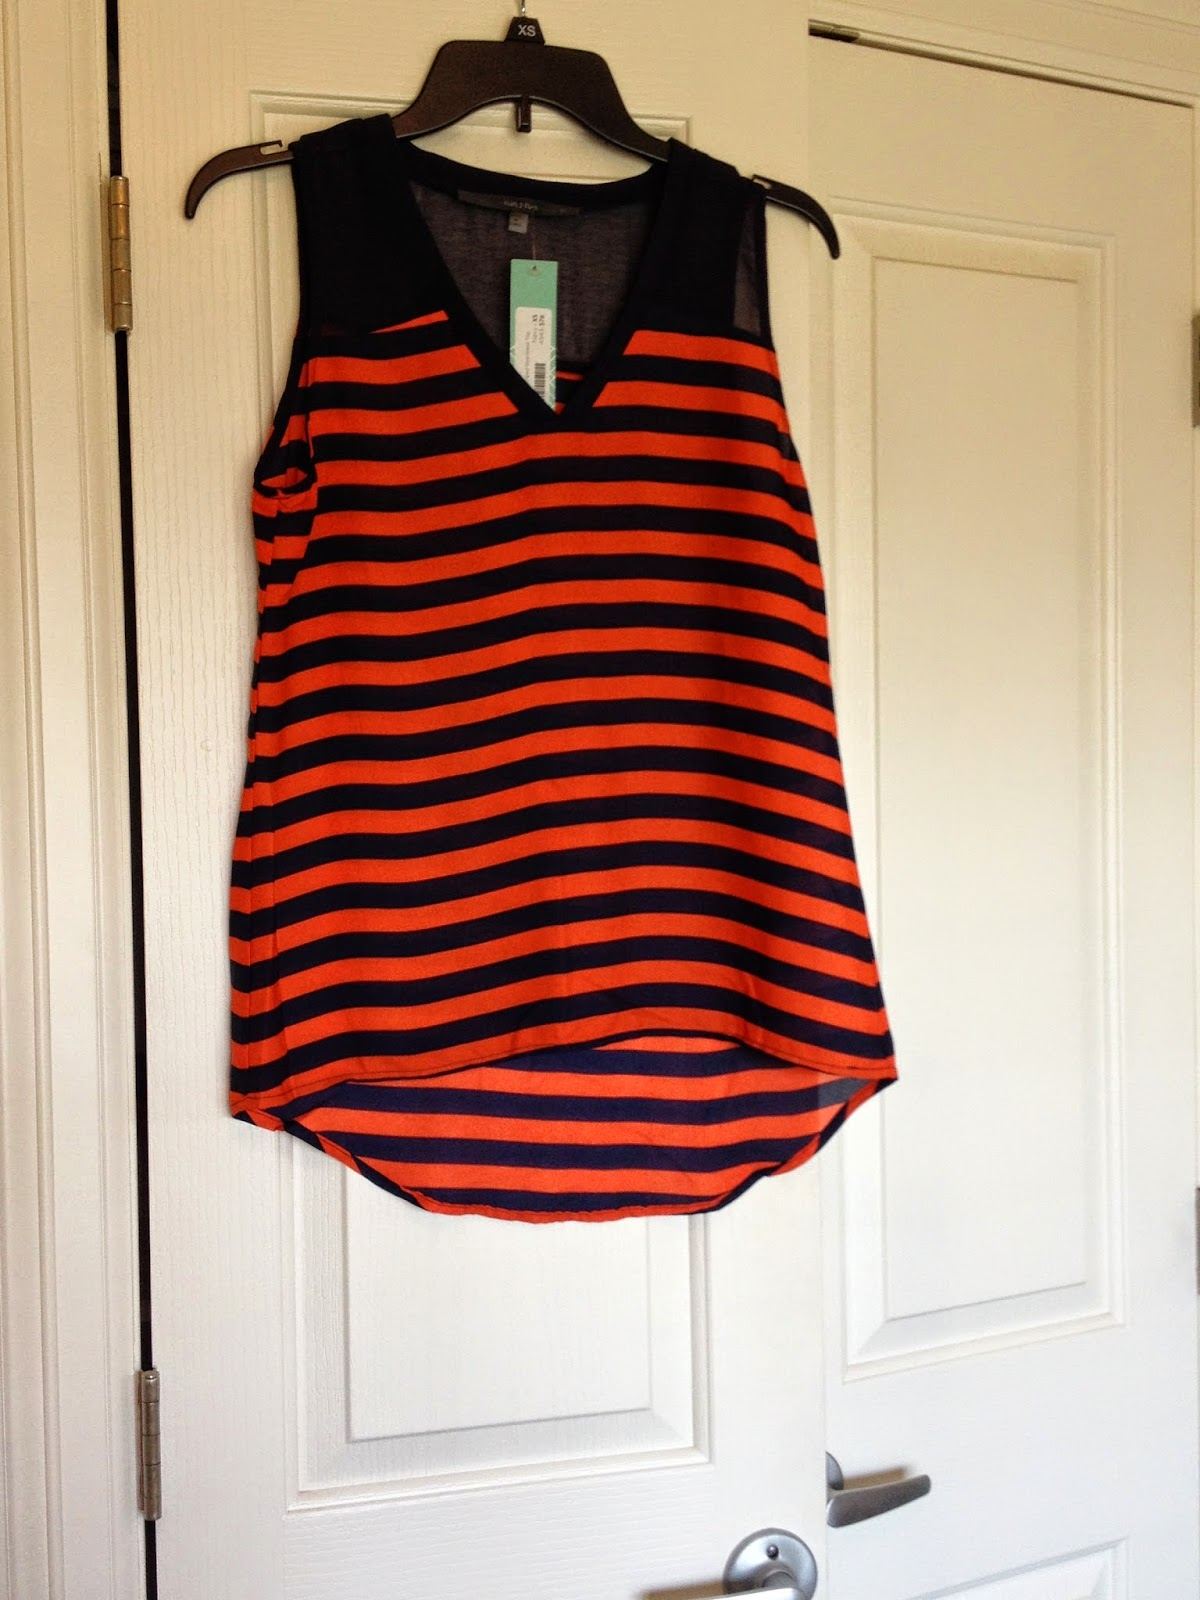 Fun2Fun Sonoma Striped Sleeveless Top StitchFix